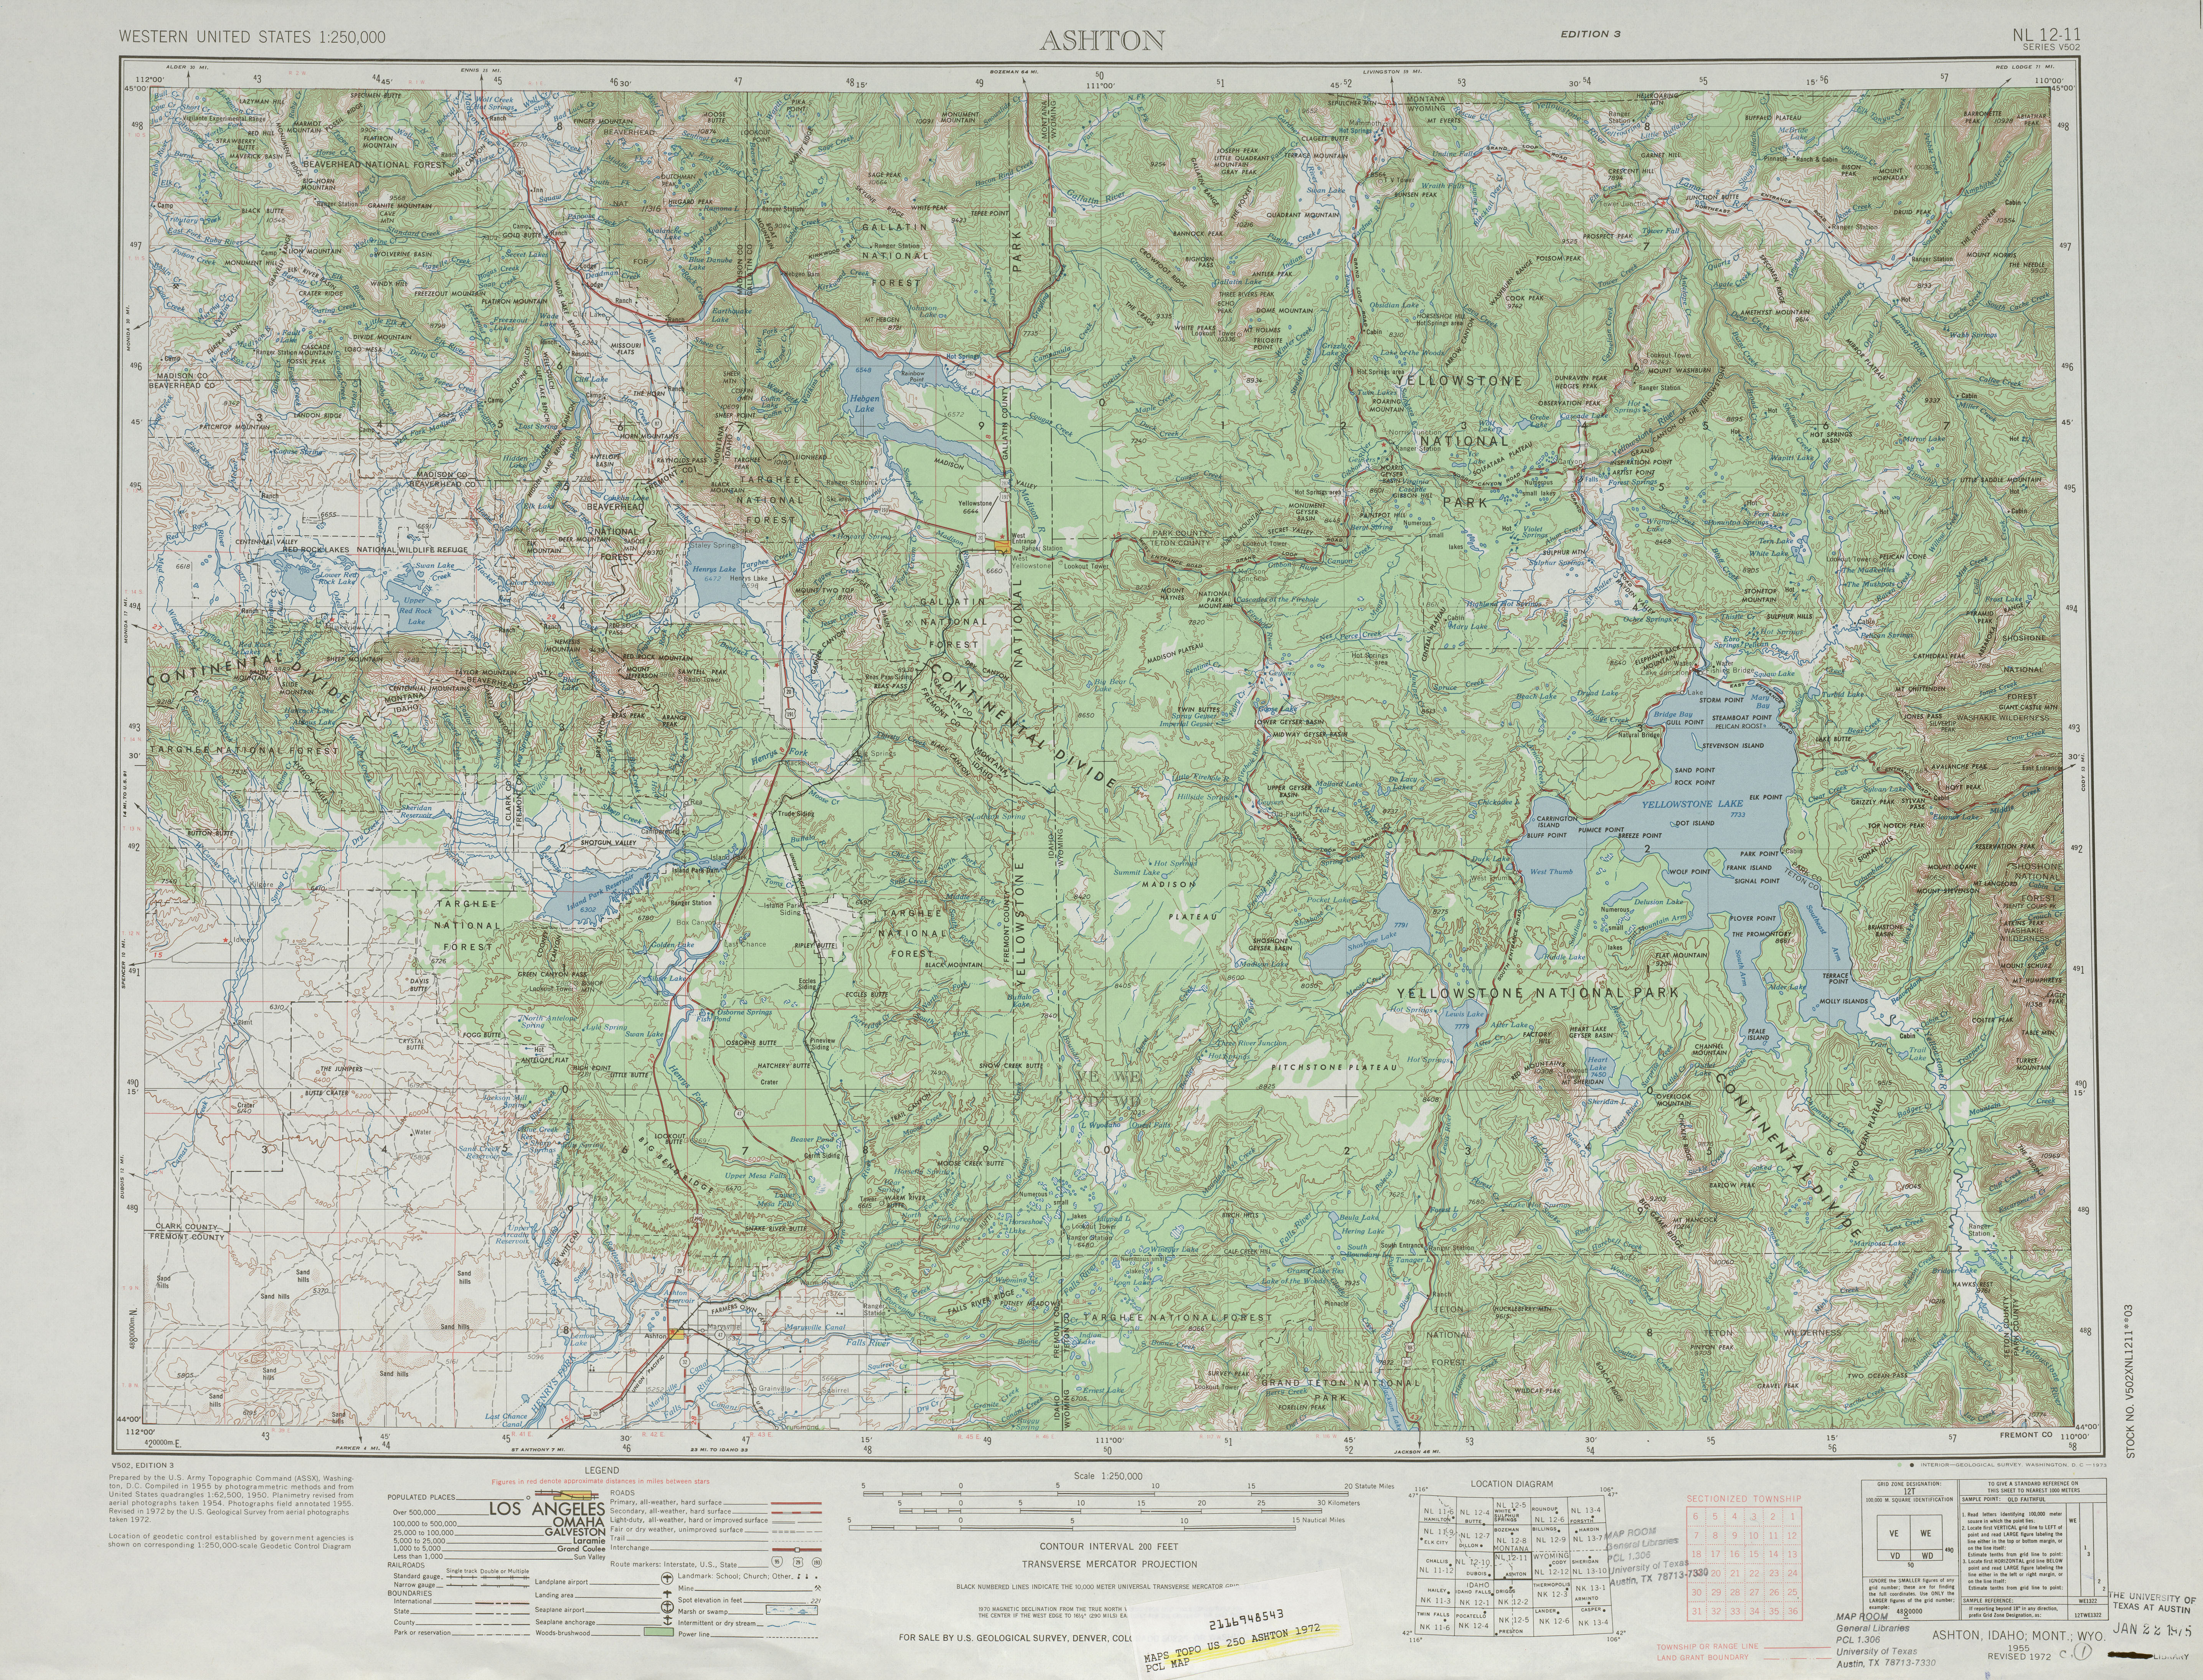 Ashton Topographic Map Sheet, United States 1972